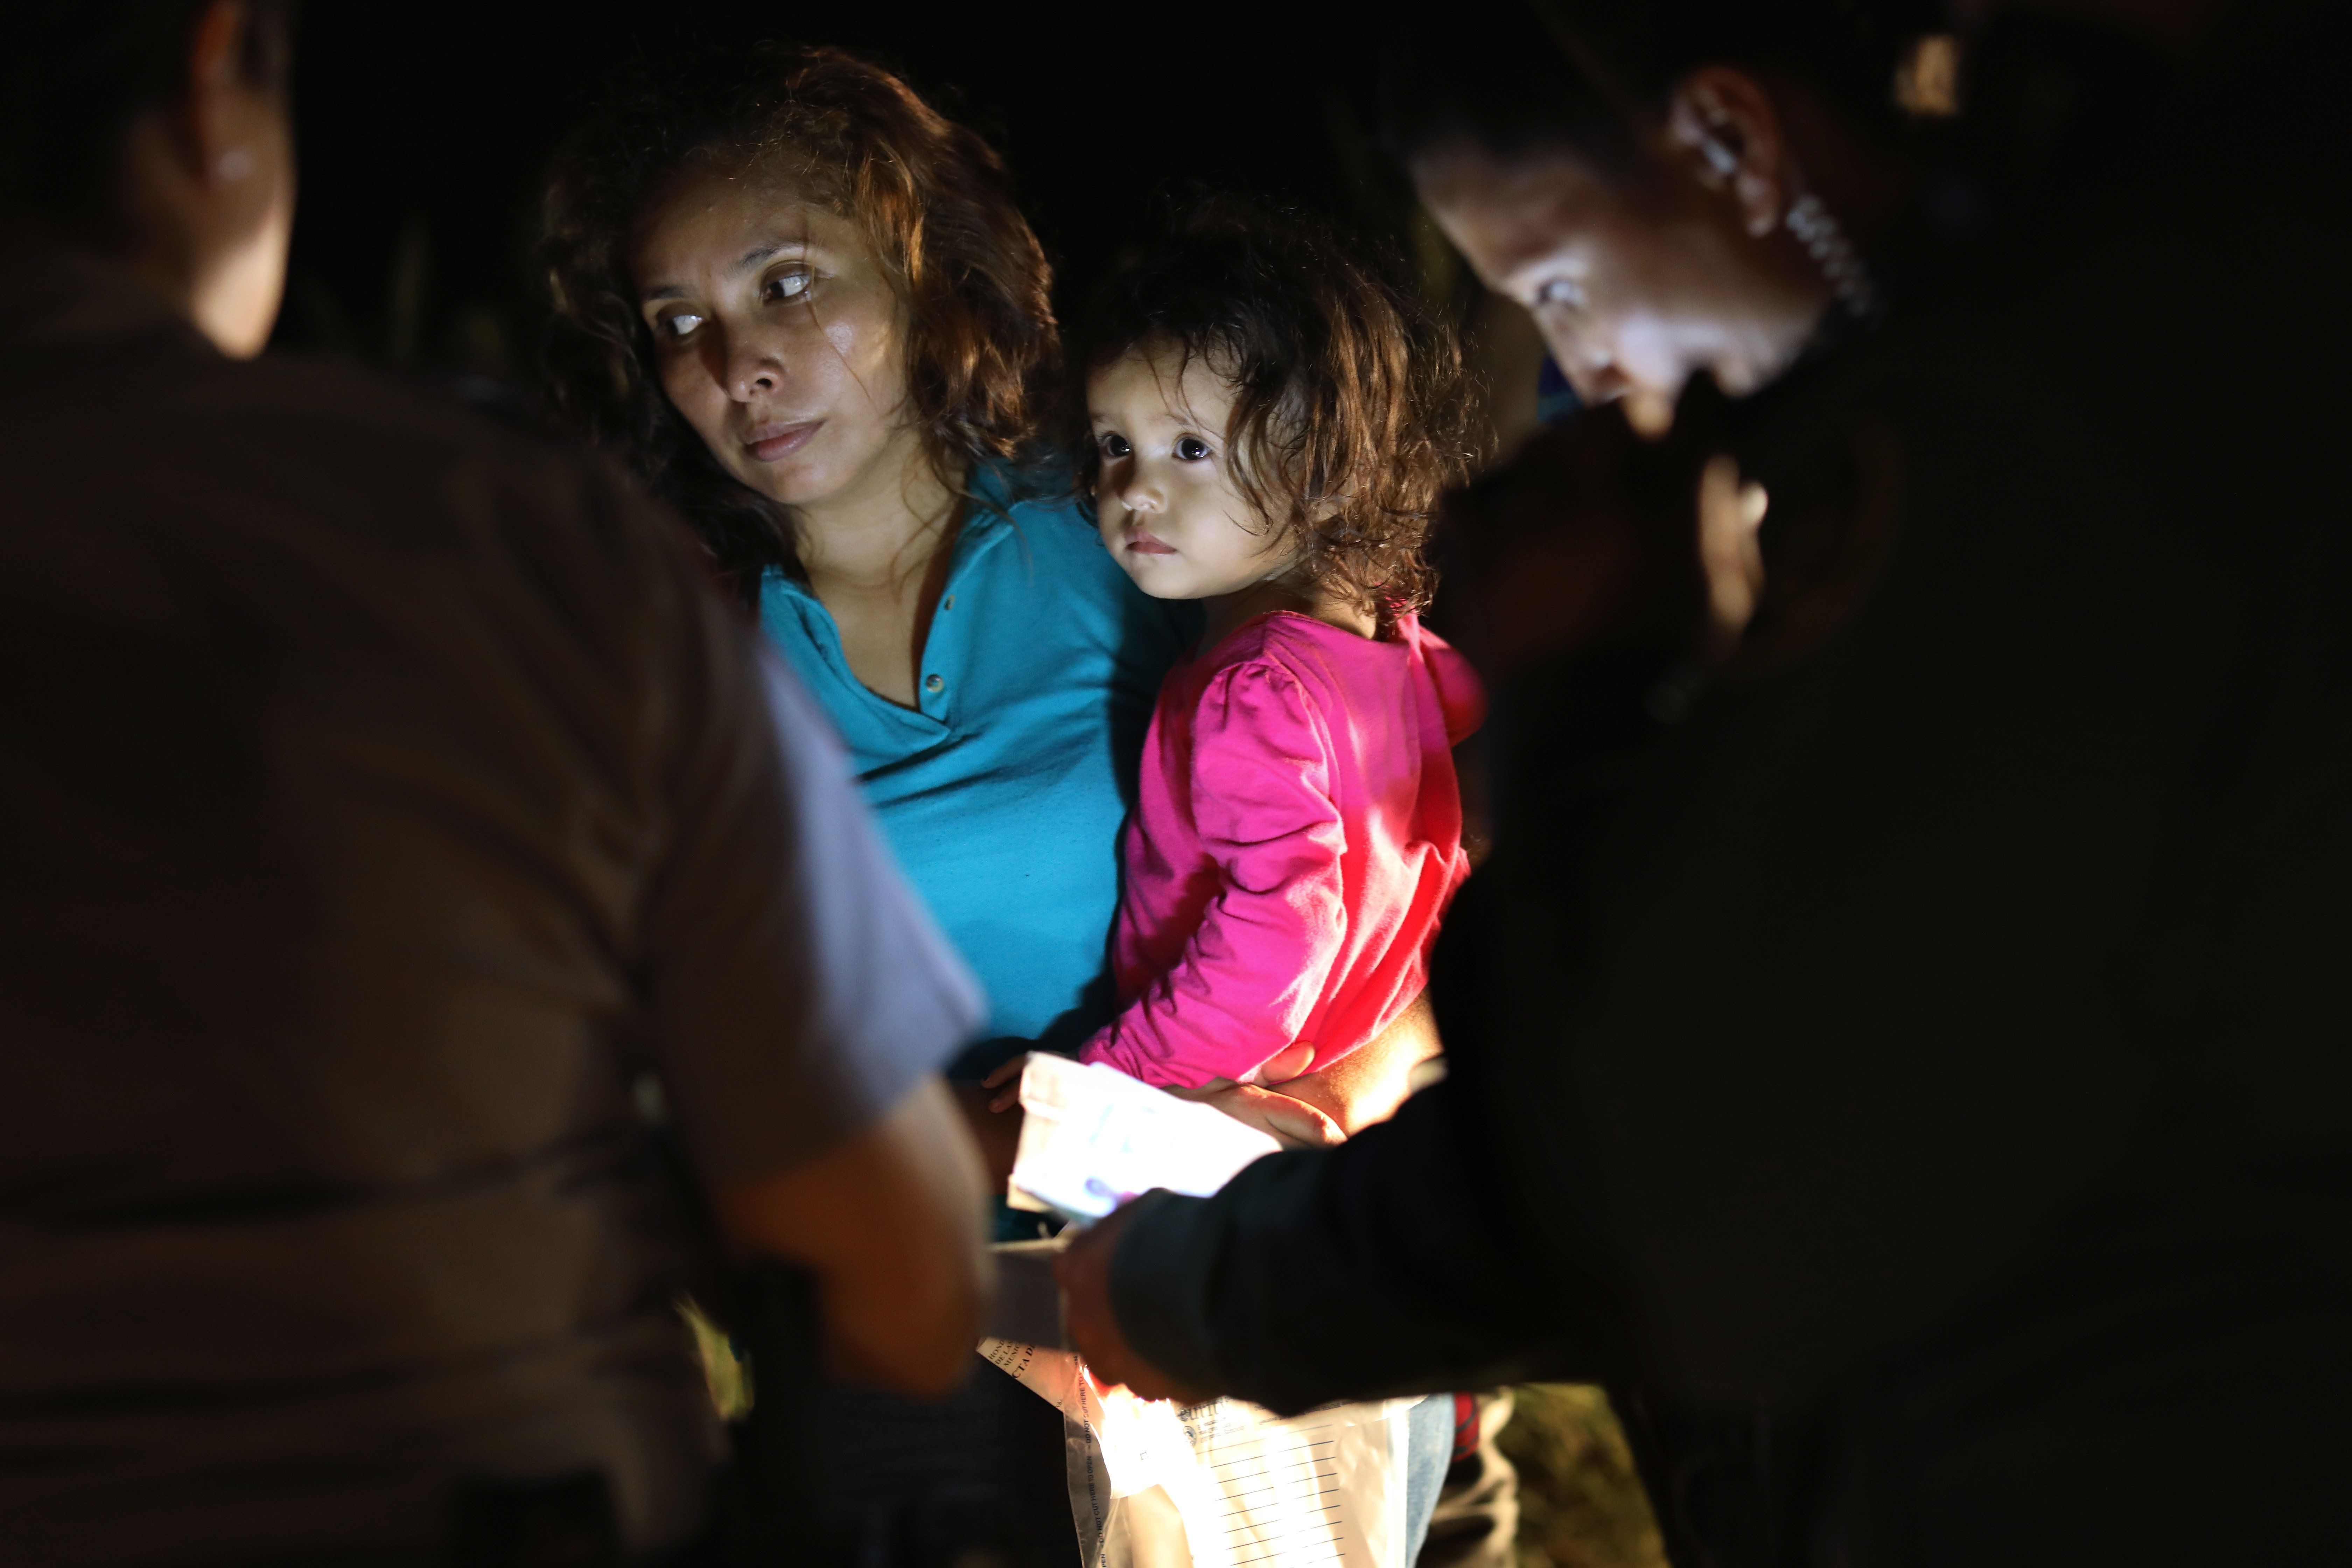 MCALLEN, TX - JUNE 12:  A Honduran mother holds her two-year-old as U.S. Border Patrol as agents review their papers near the U.S.-Mexico border on June 12, 2018 in McAllen, Texas. The asylum seekers had rafted across the Rio Grande from Mexico and were detained by U.S. Border Patrol agents before being sent to a processing center for possible separation. Customs and Border Protection (CBP) is executing the Trump administration's 'zero tolerance' policy towards undocumented immigrants. U.S. Attorney General Jeff Sessions also said that domestic and gang violence in immigrants' country of origin would no longer qualify them for political asylum status.  (Photo by John Moore/Getty Images)